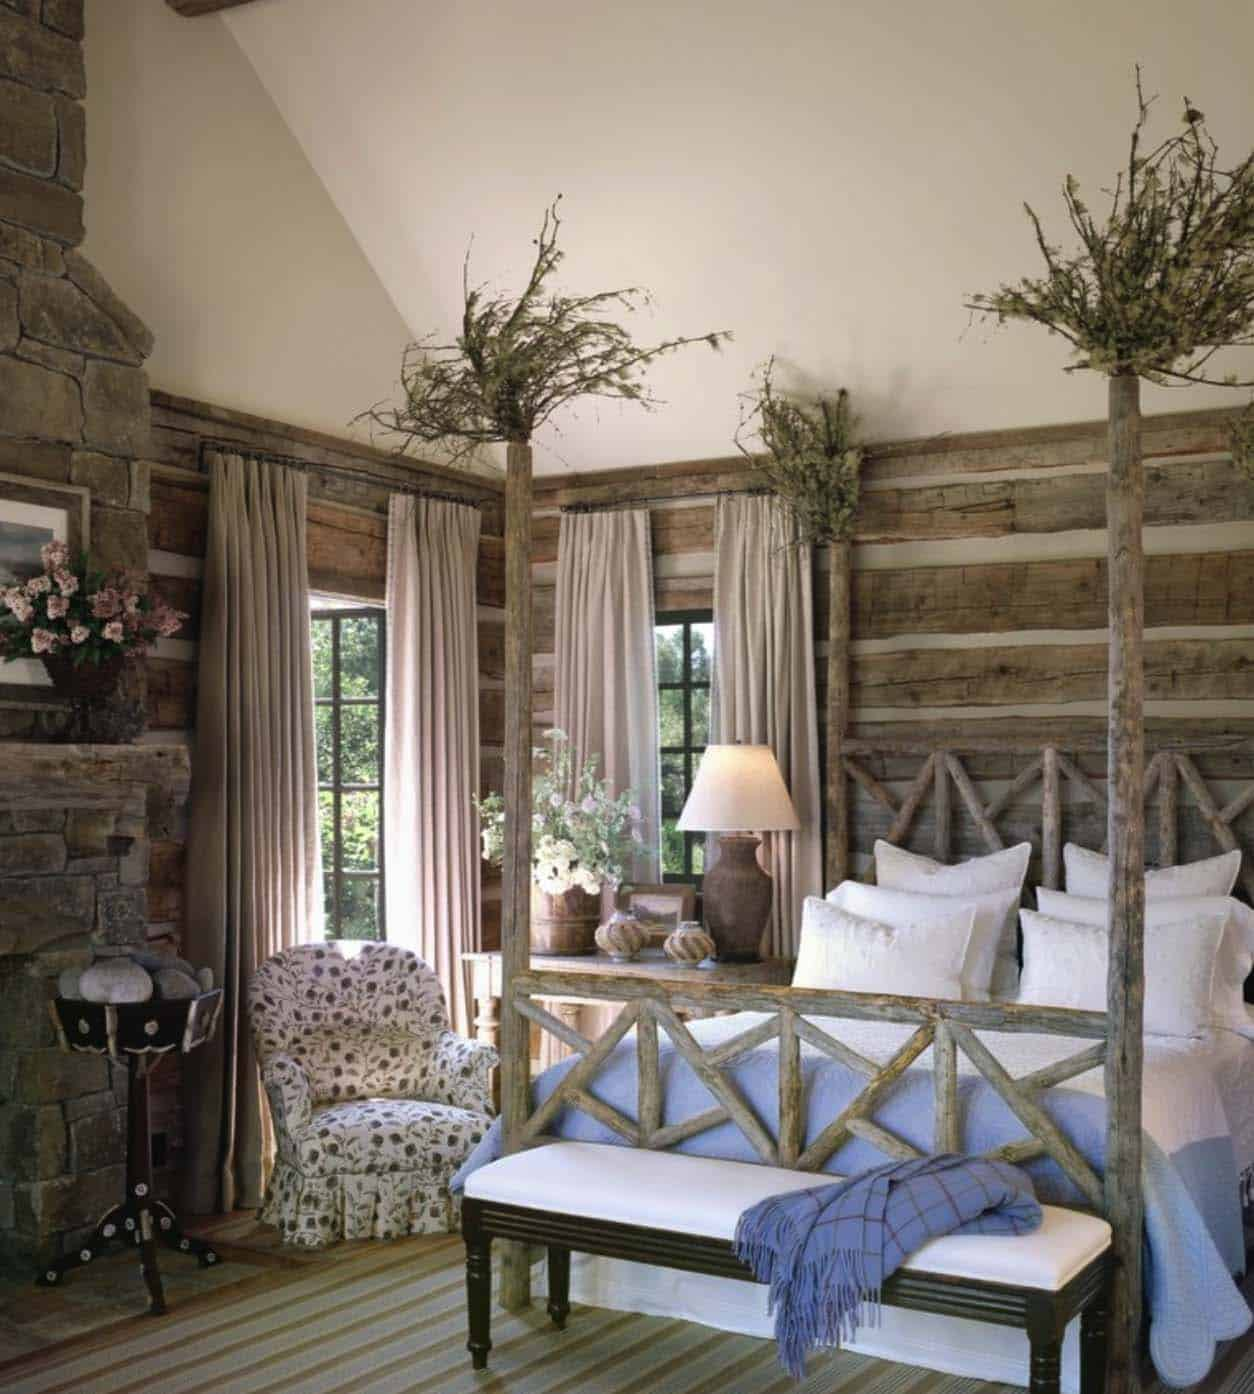 Cabin Bedroom Ideas: 35+ Gorgeous Log Cabin Style Bedrooms To Make You Drool